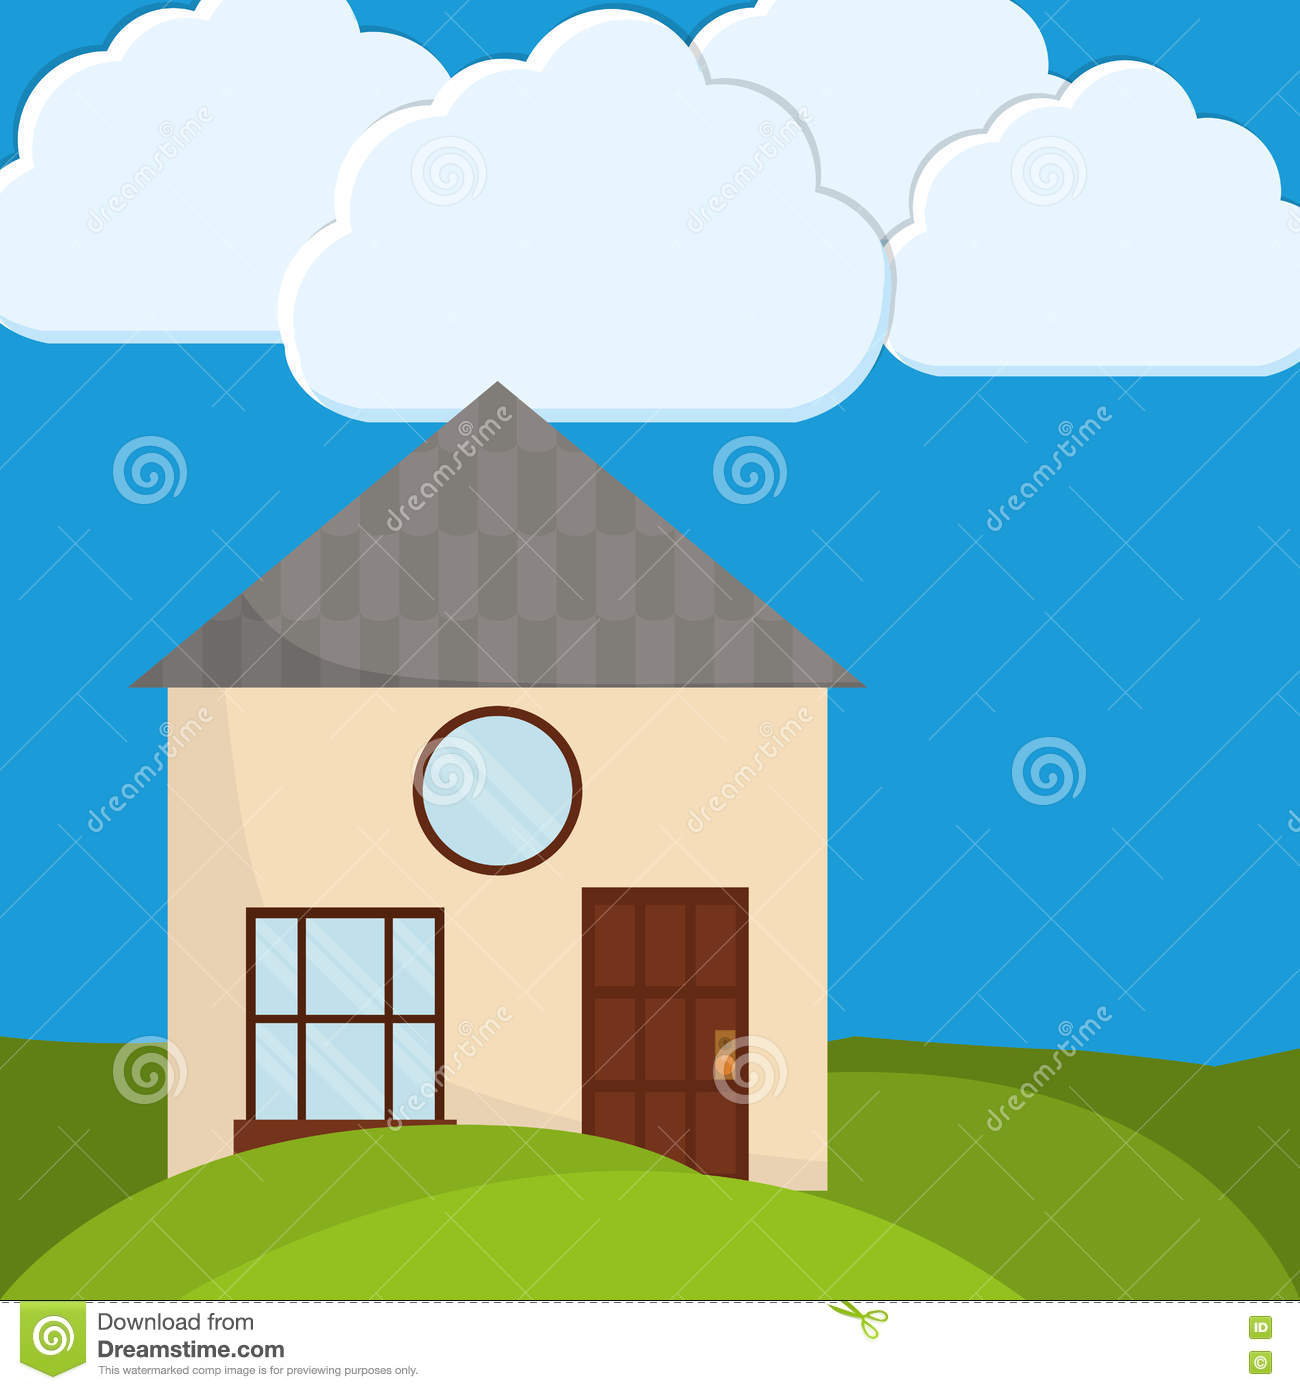 Family house home icon landscape illustration graphic for At home graphic design